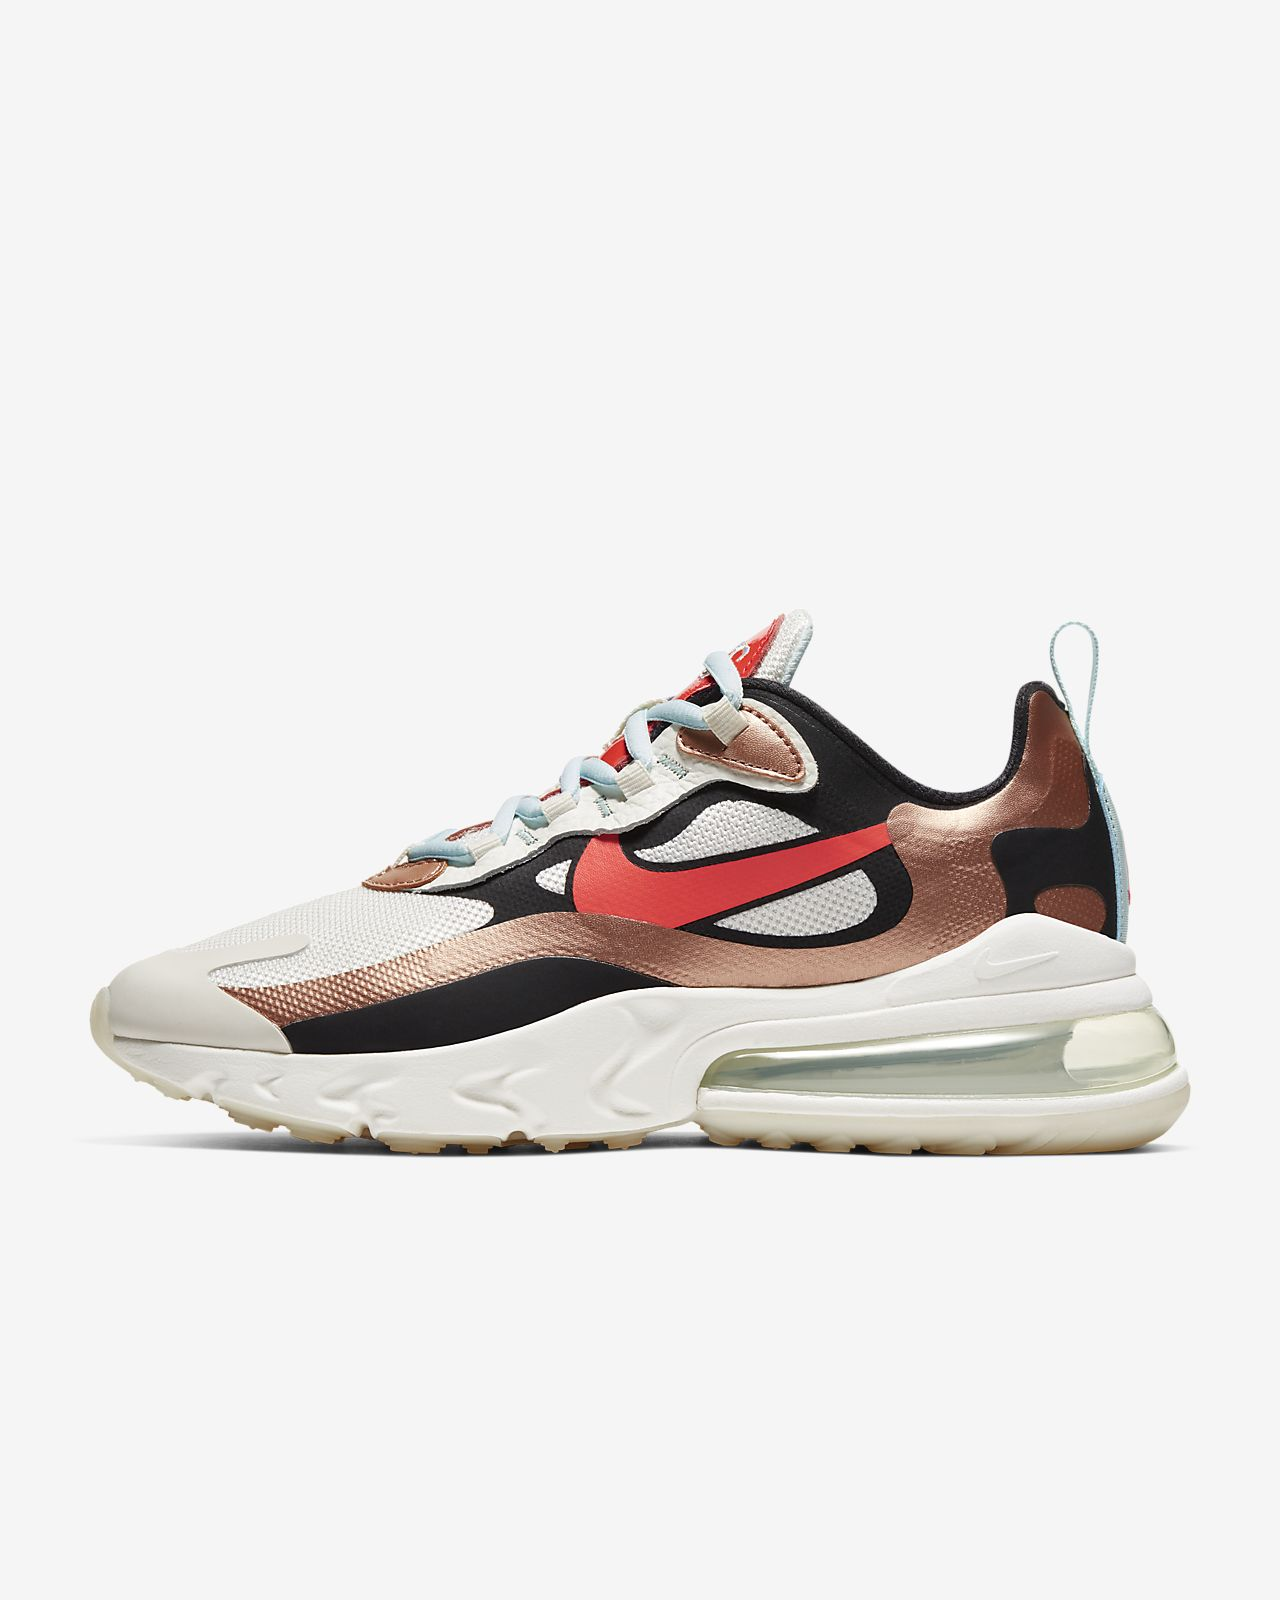 Women Shoes | Nike air max, Nike, Sneakers nike